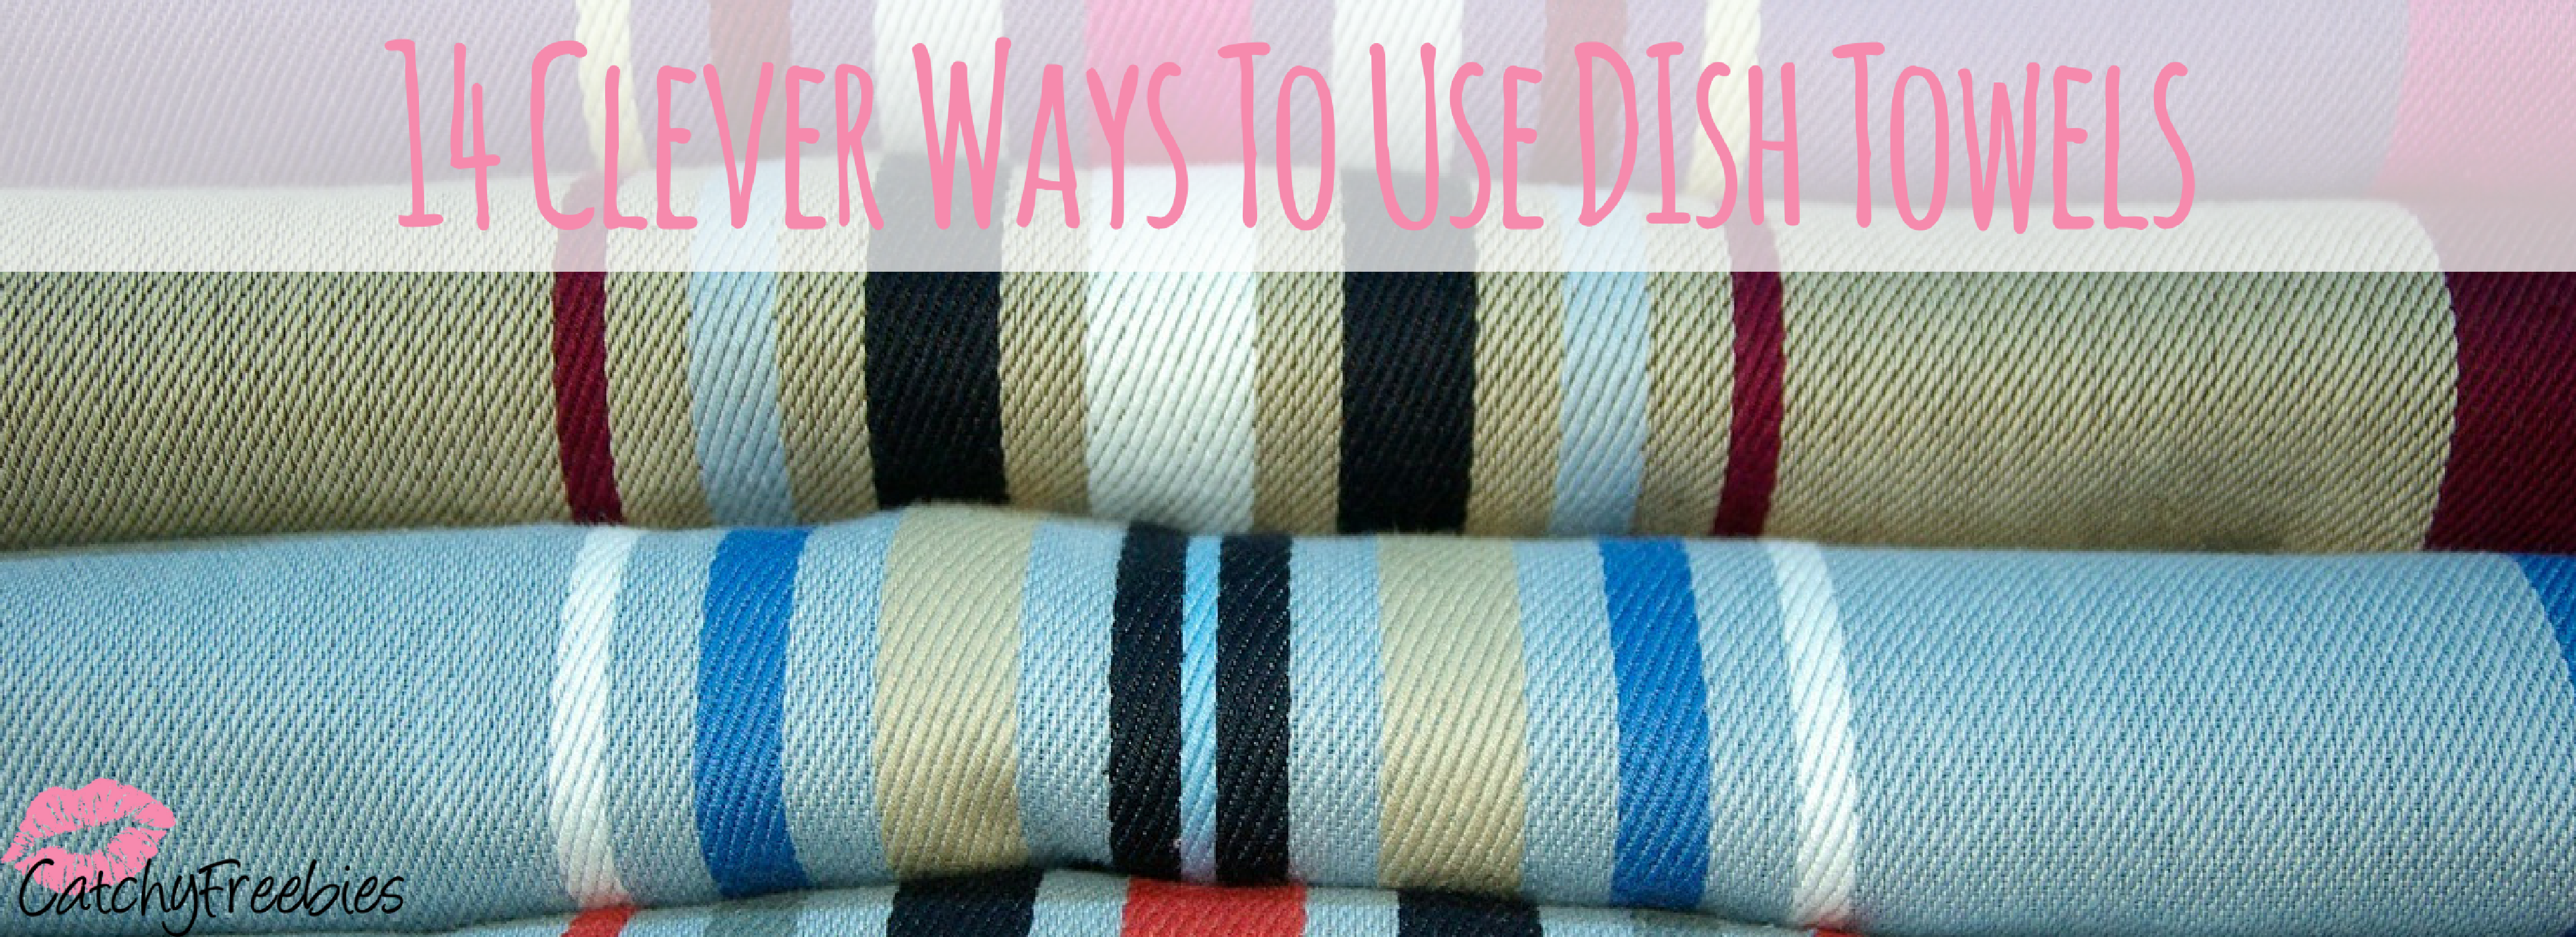 14 Clever Ways To Use Dish Towels